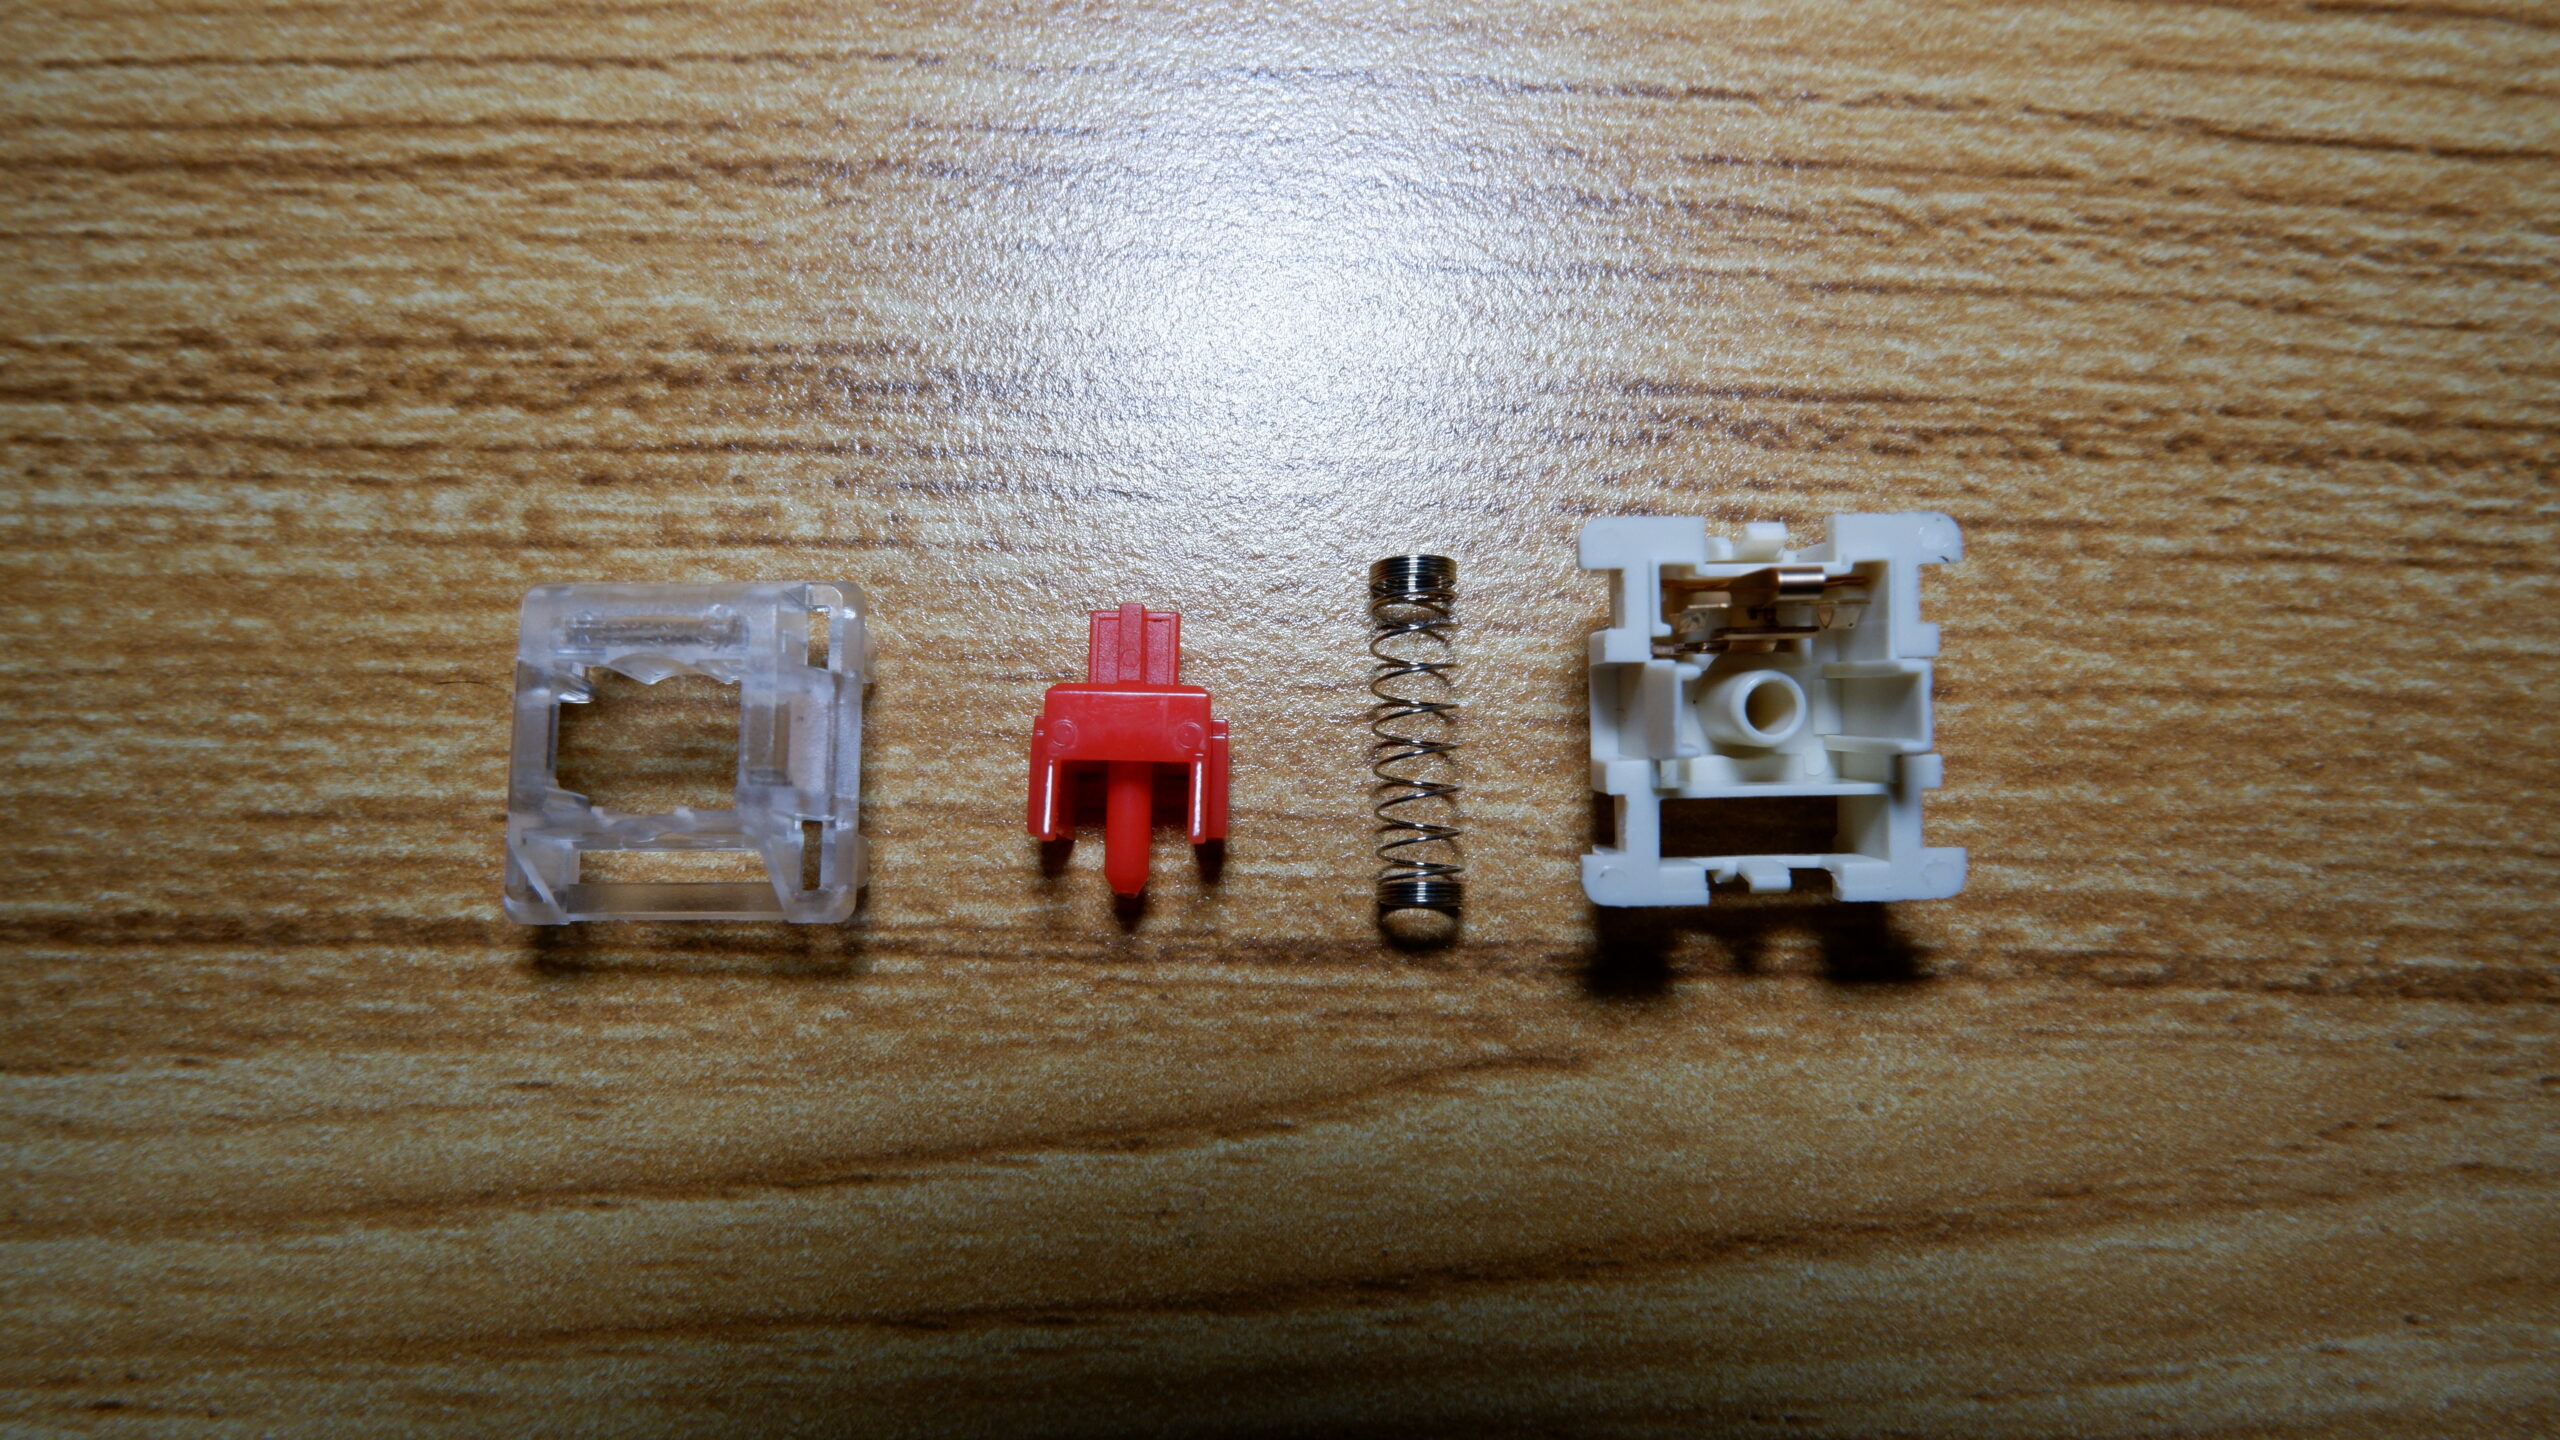 Greetech Red switches disassembled